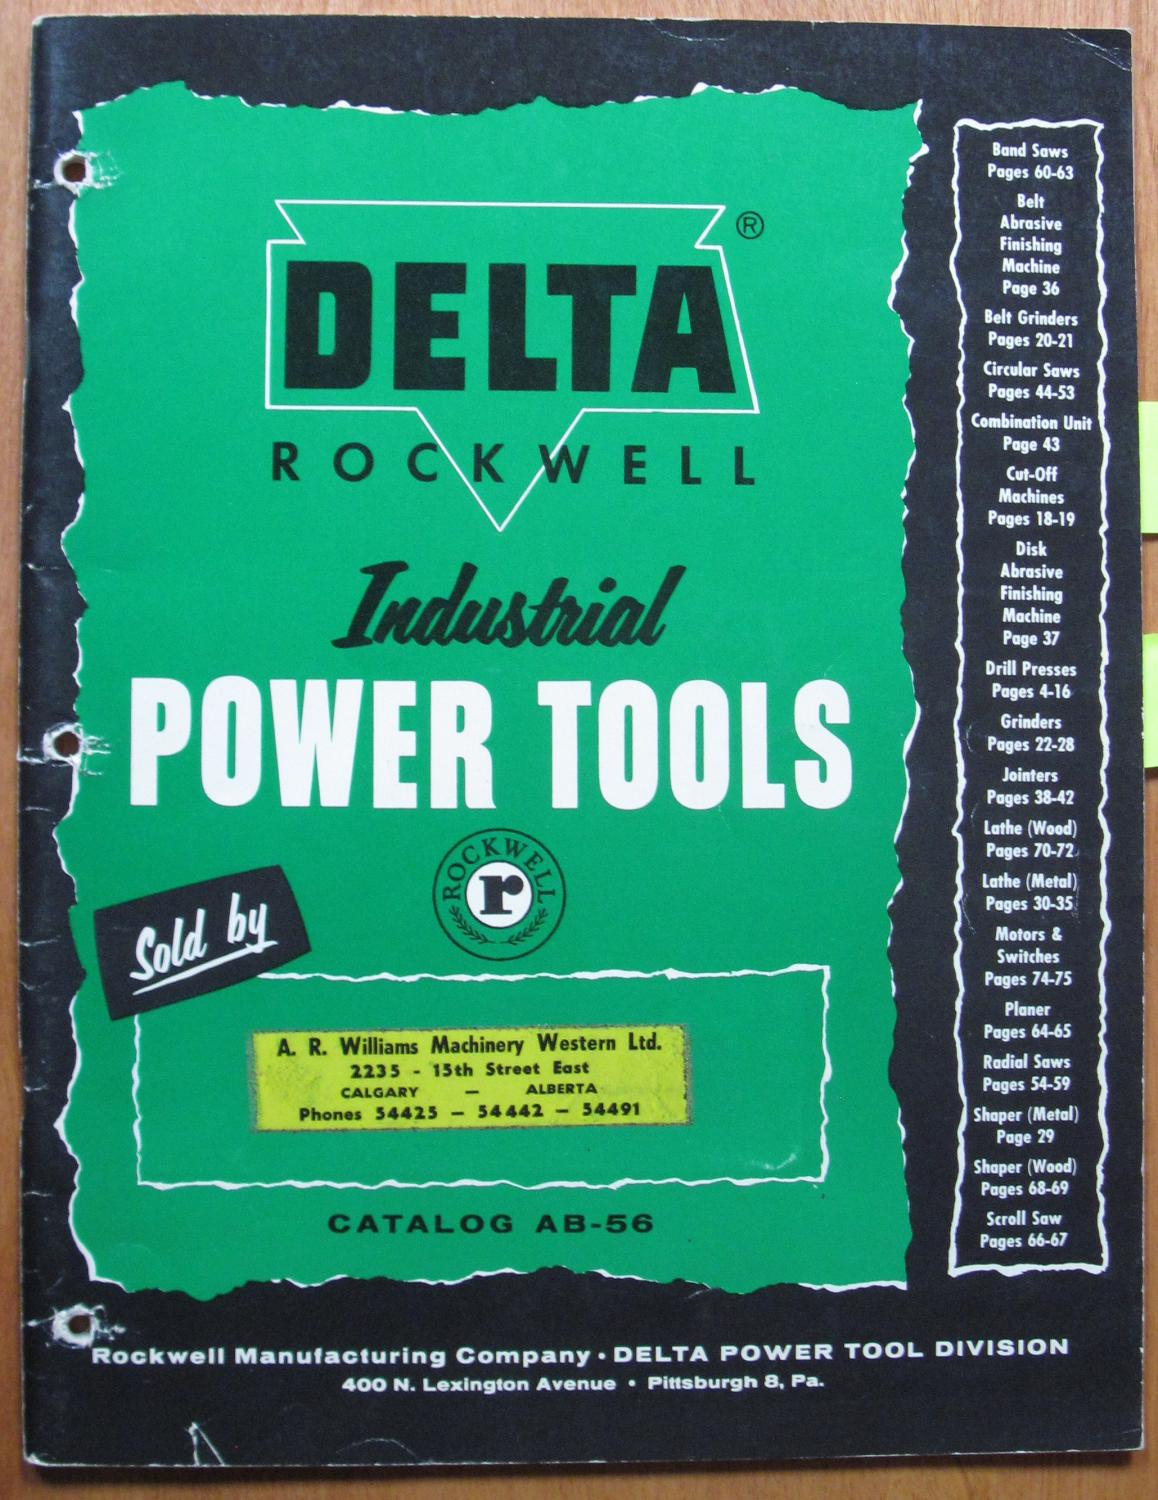 Delta Rockwell Industrial Power Tools